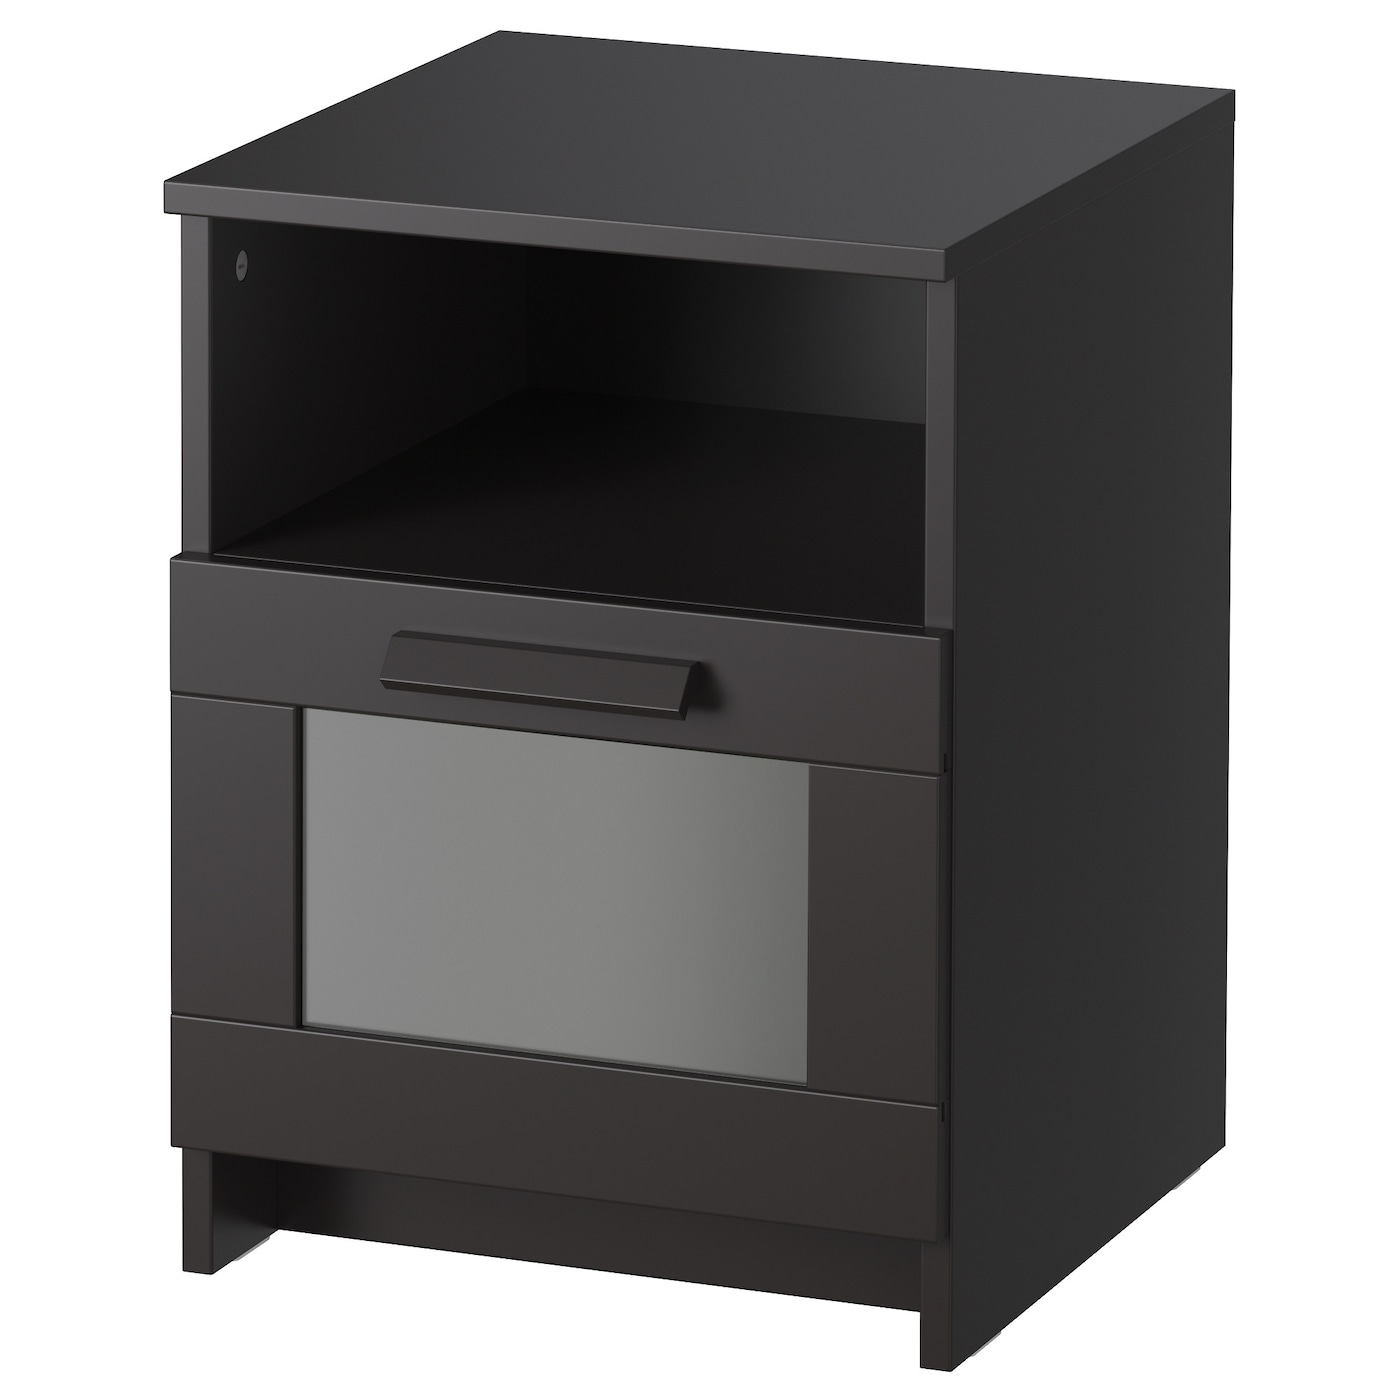 brimnes table de chevet noir 39 x 41 cm ikea. Black Bedroom Furniture Sets. Home Design Ideas